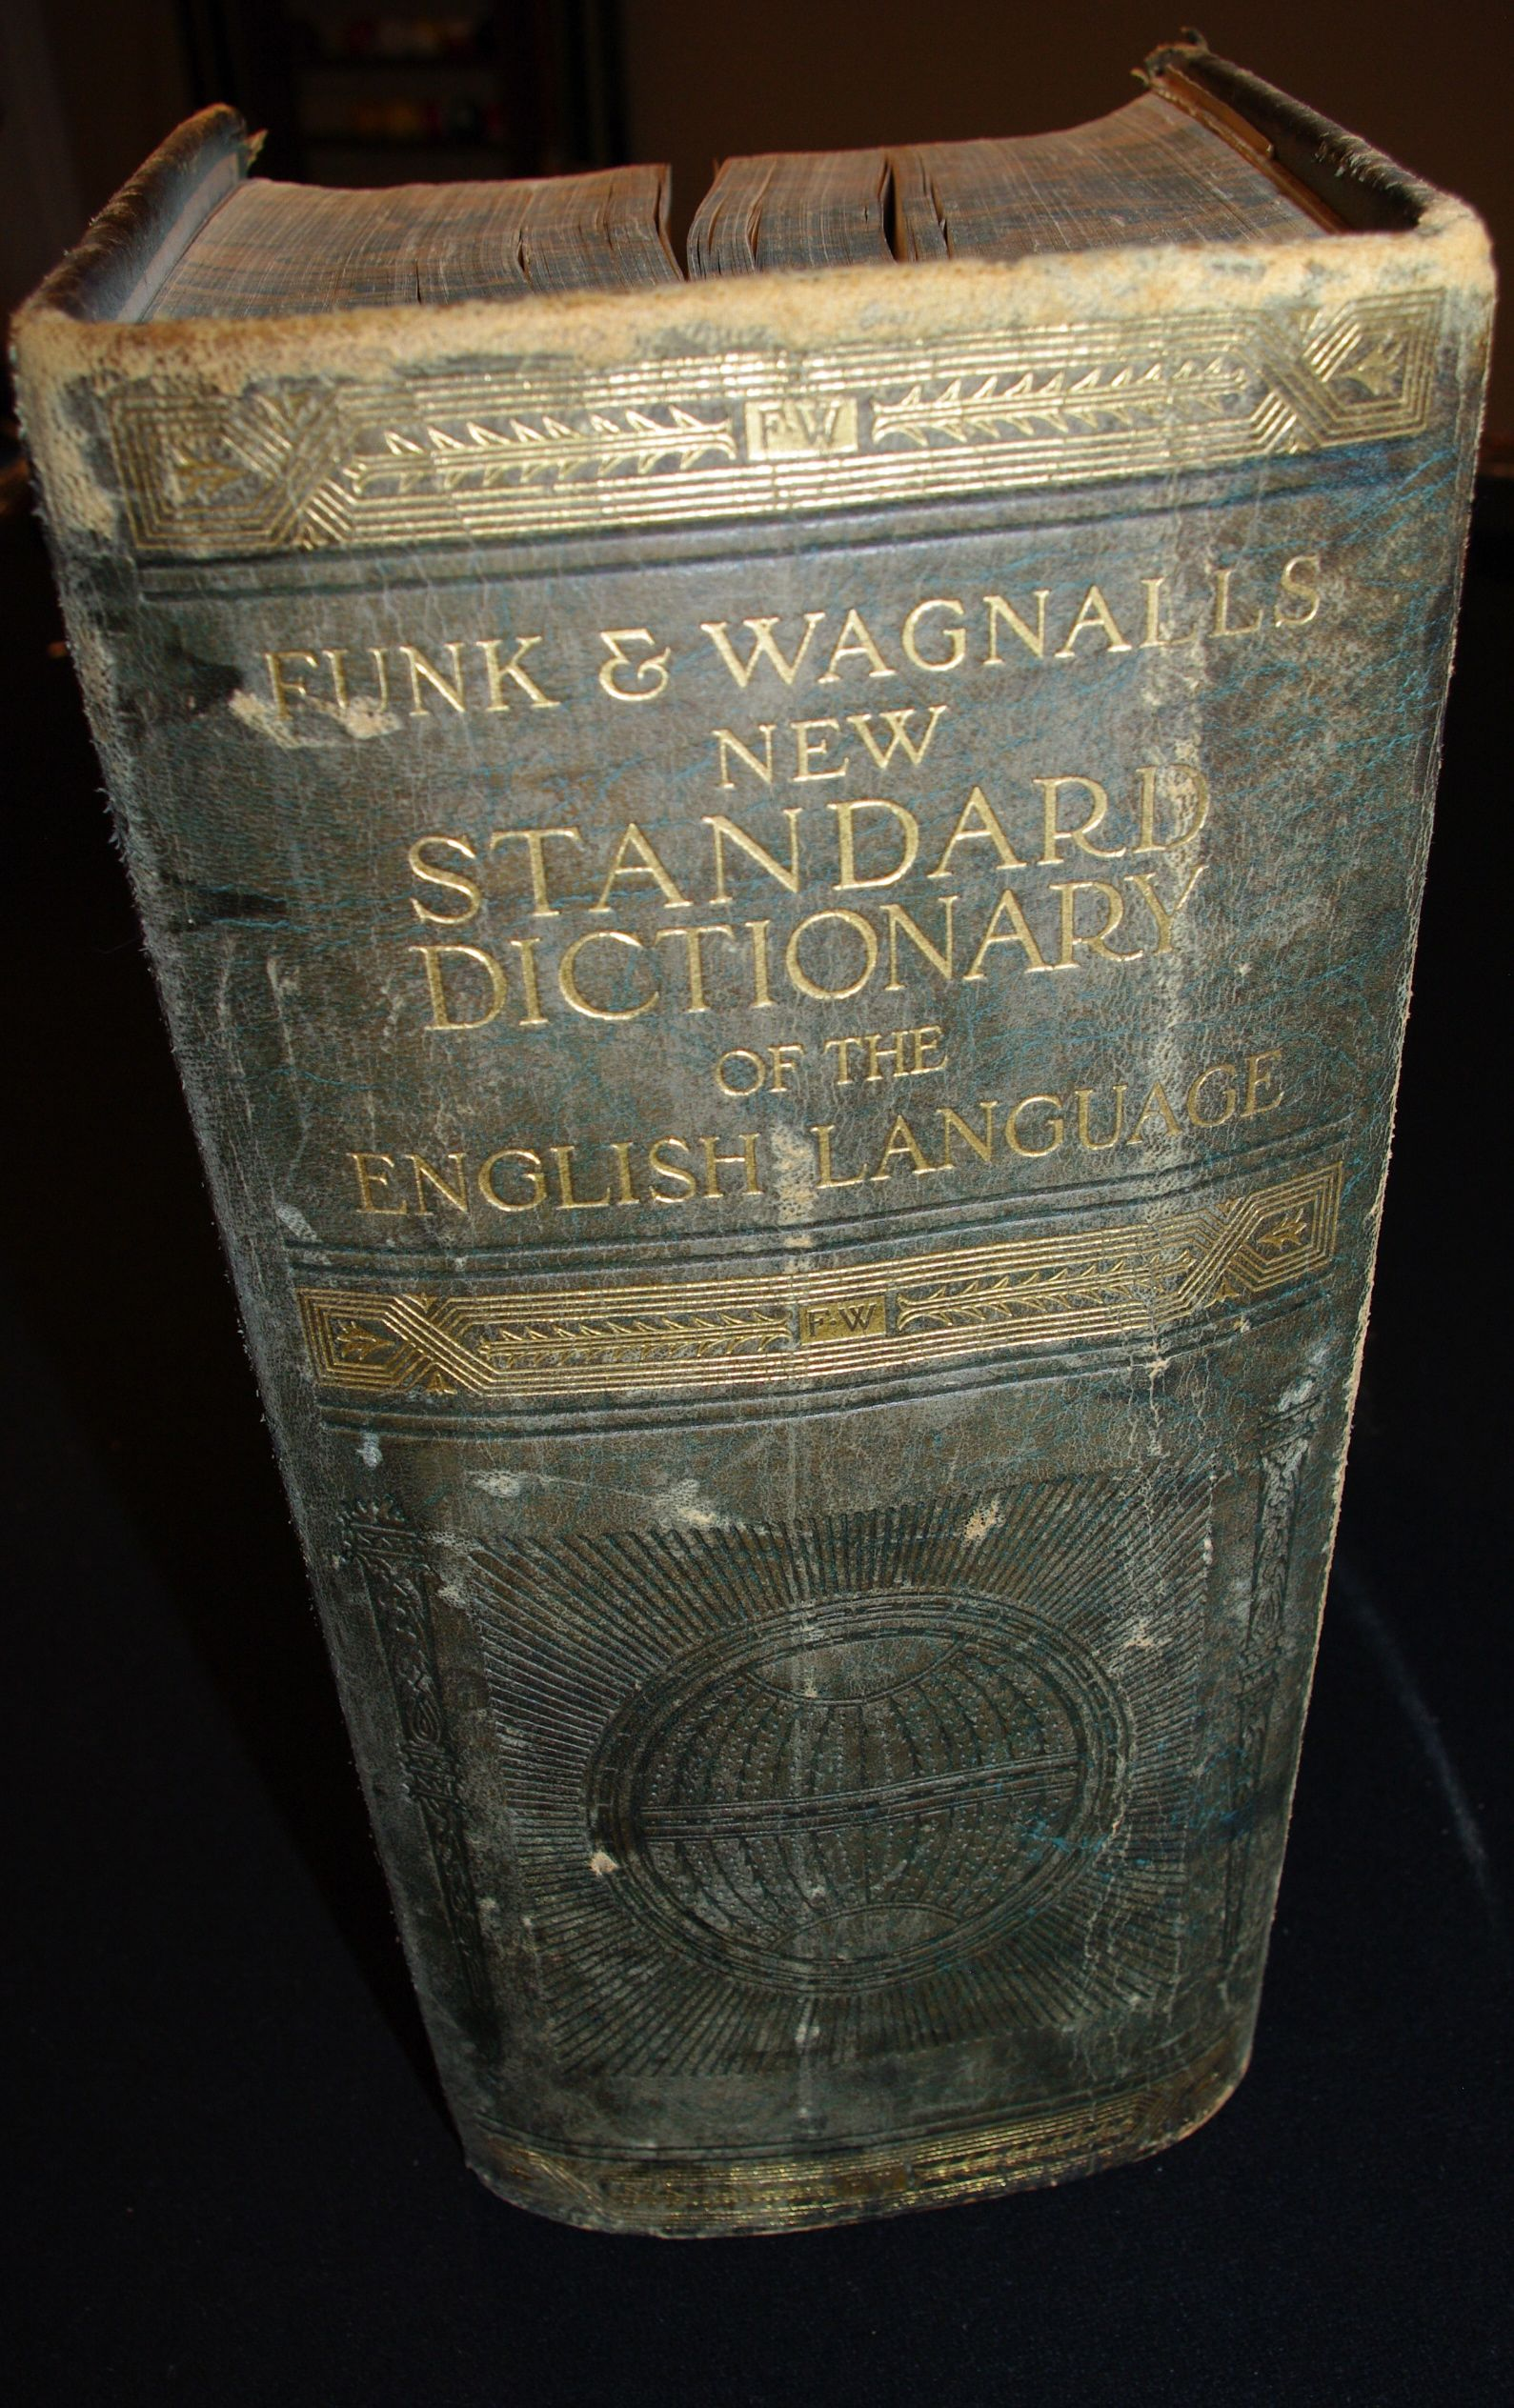 This 1924 edition Funk & Wagnalls dictionary is a great place to file odds and ends.  Photos, leaves, postcards from the past.  The problem lies in remembering my filing system.